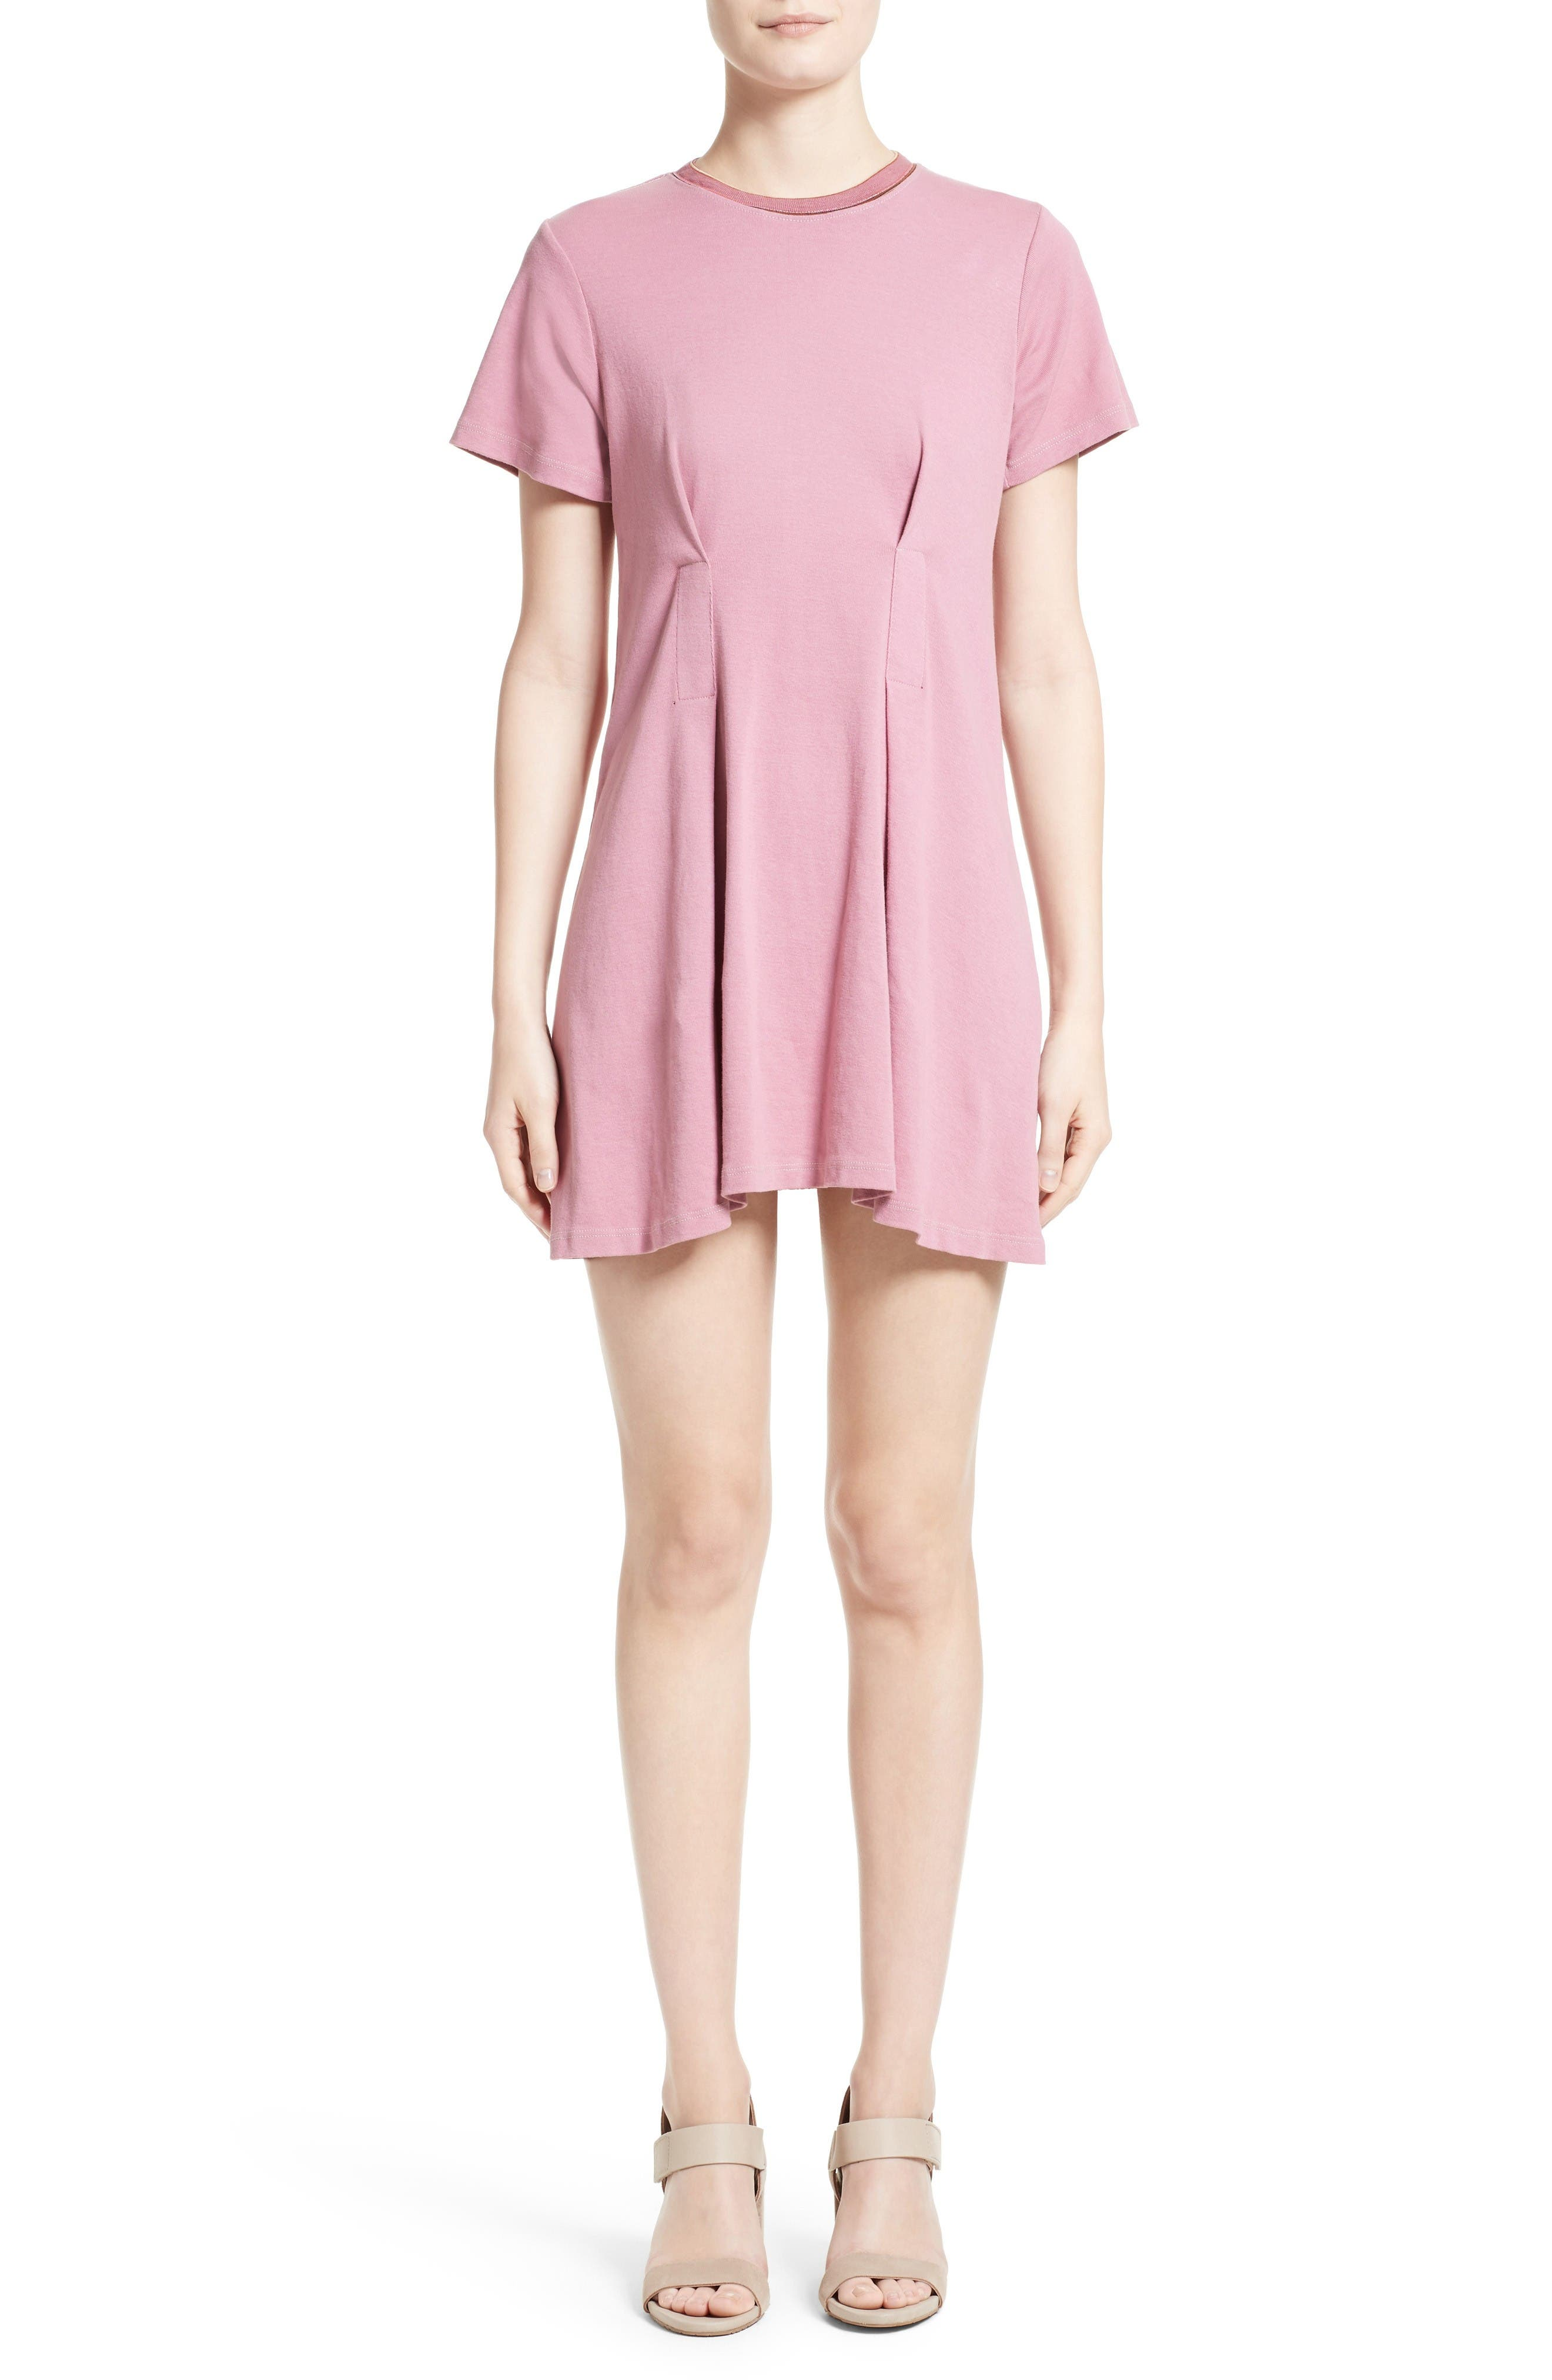 ECKHAUS LATTA T-Shirt Dress